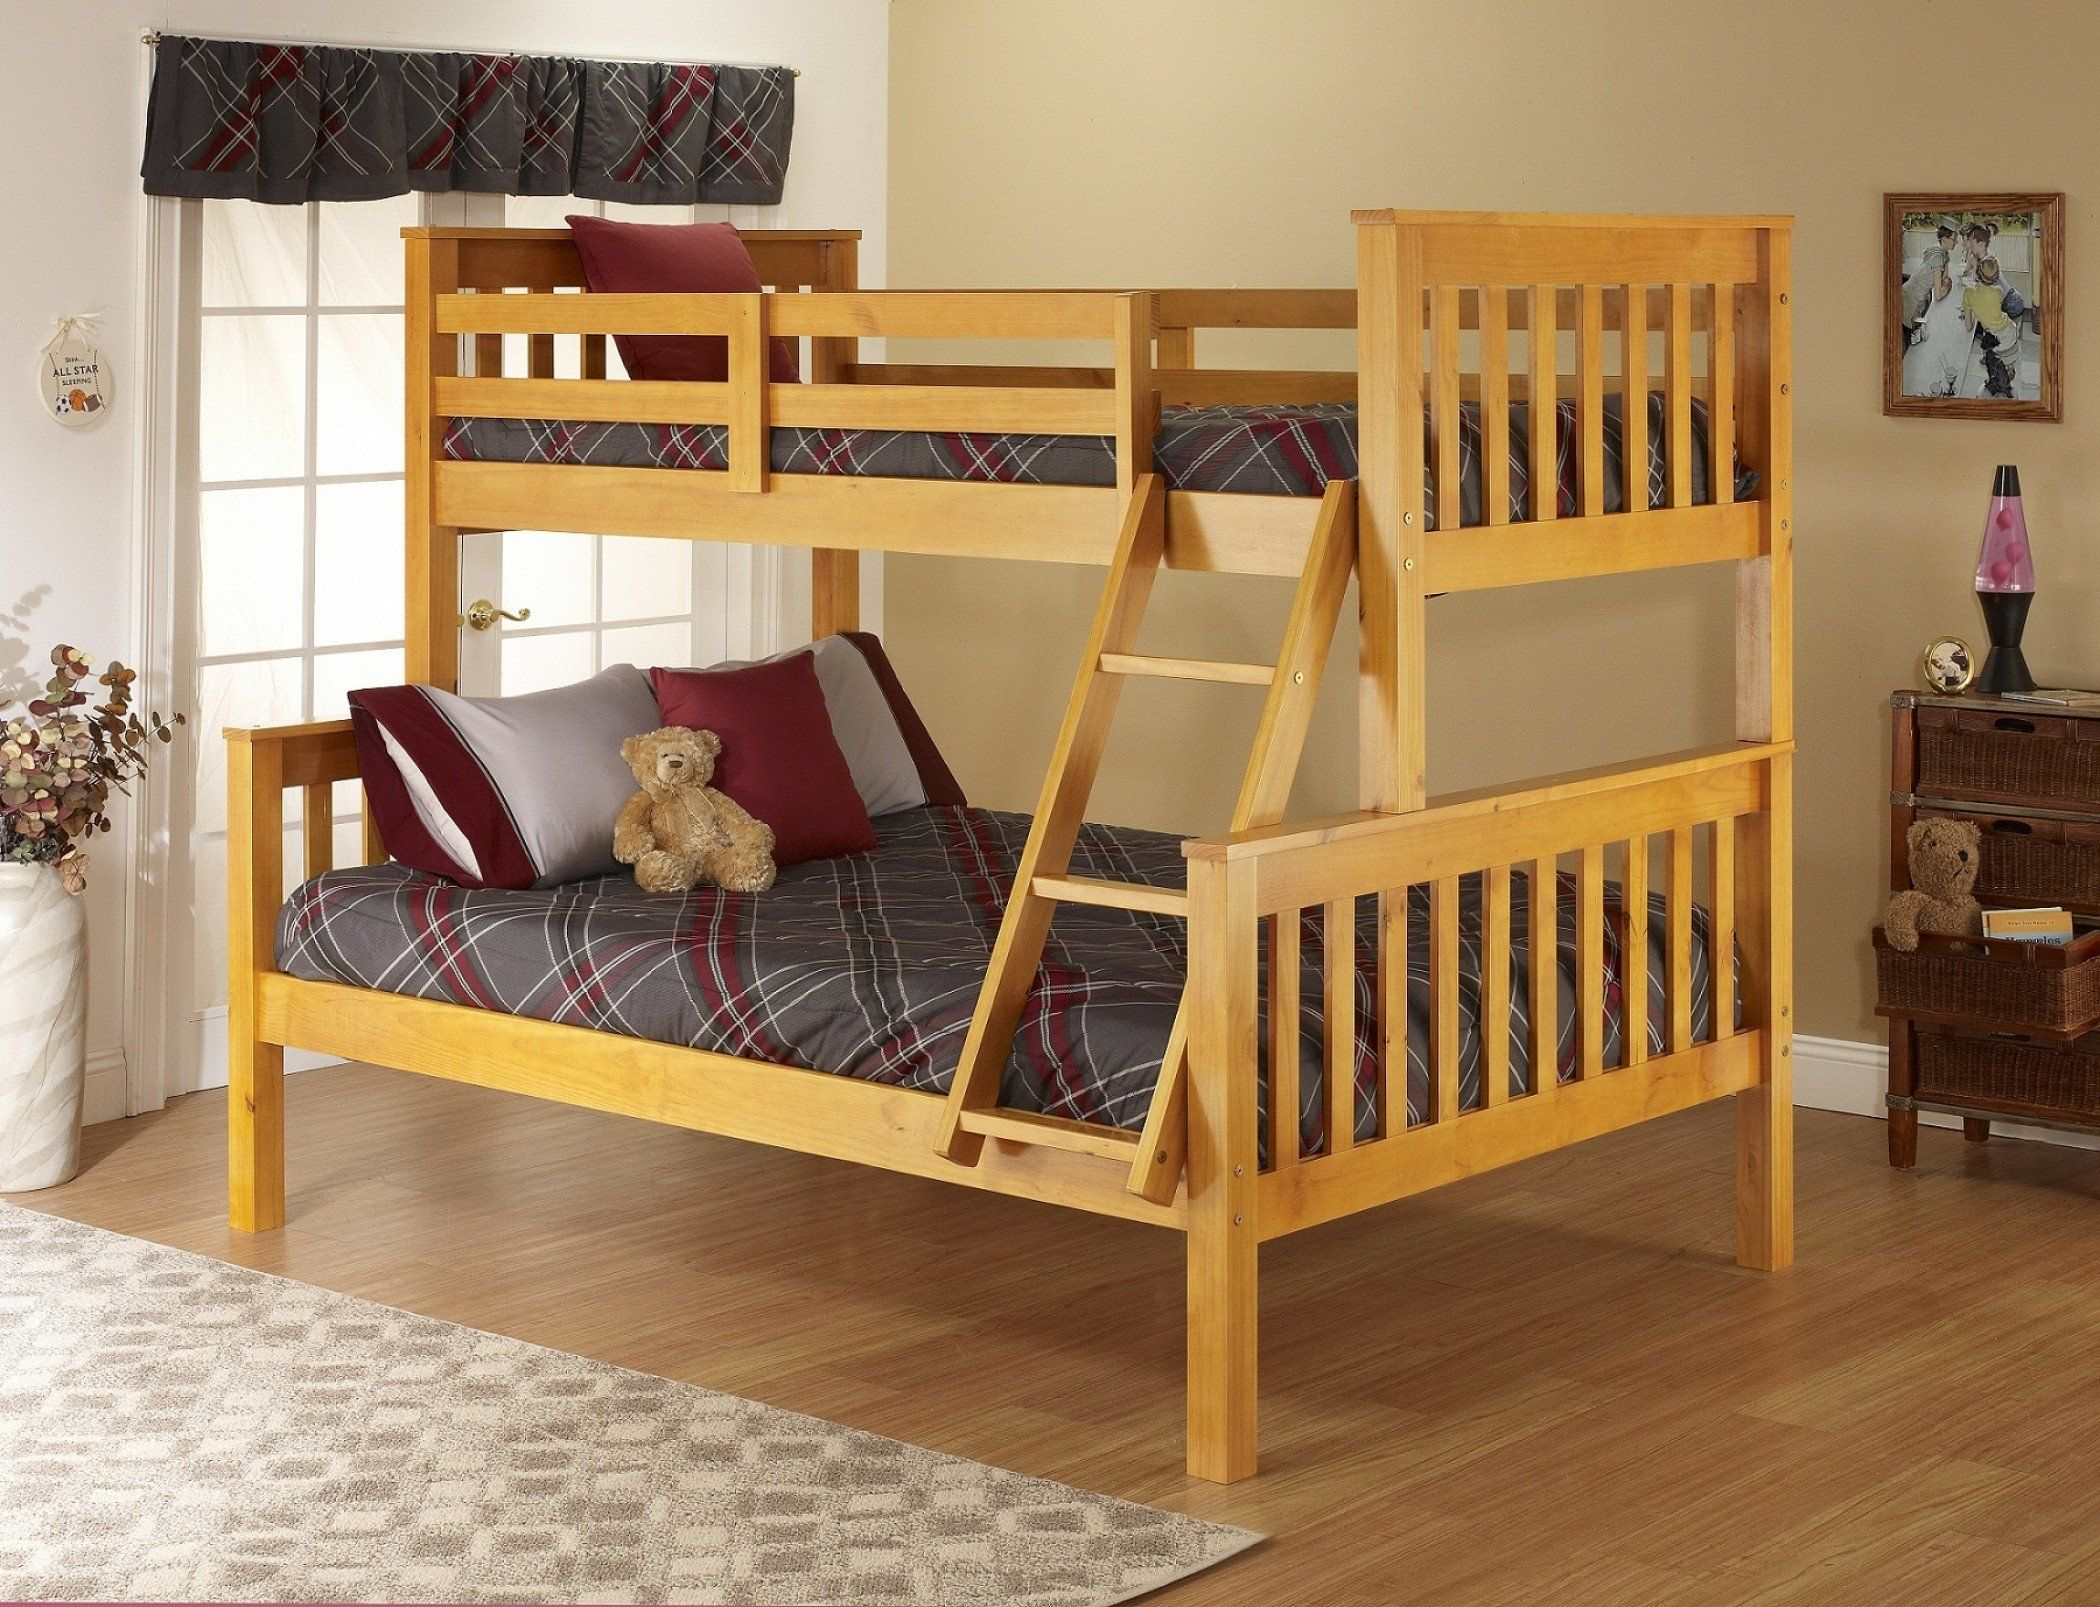 Honey Pine Twin over Full Bunk Bed Bunk beds, Full bunk